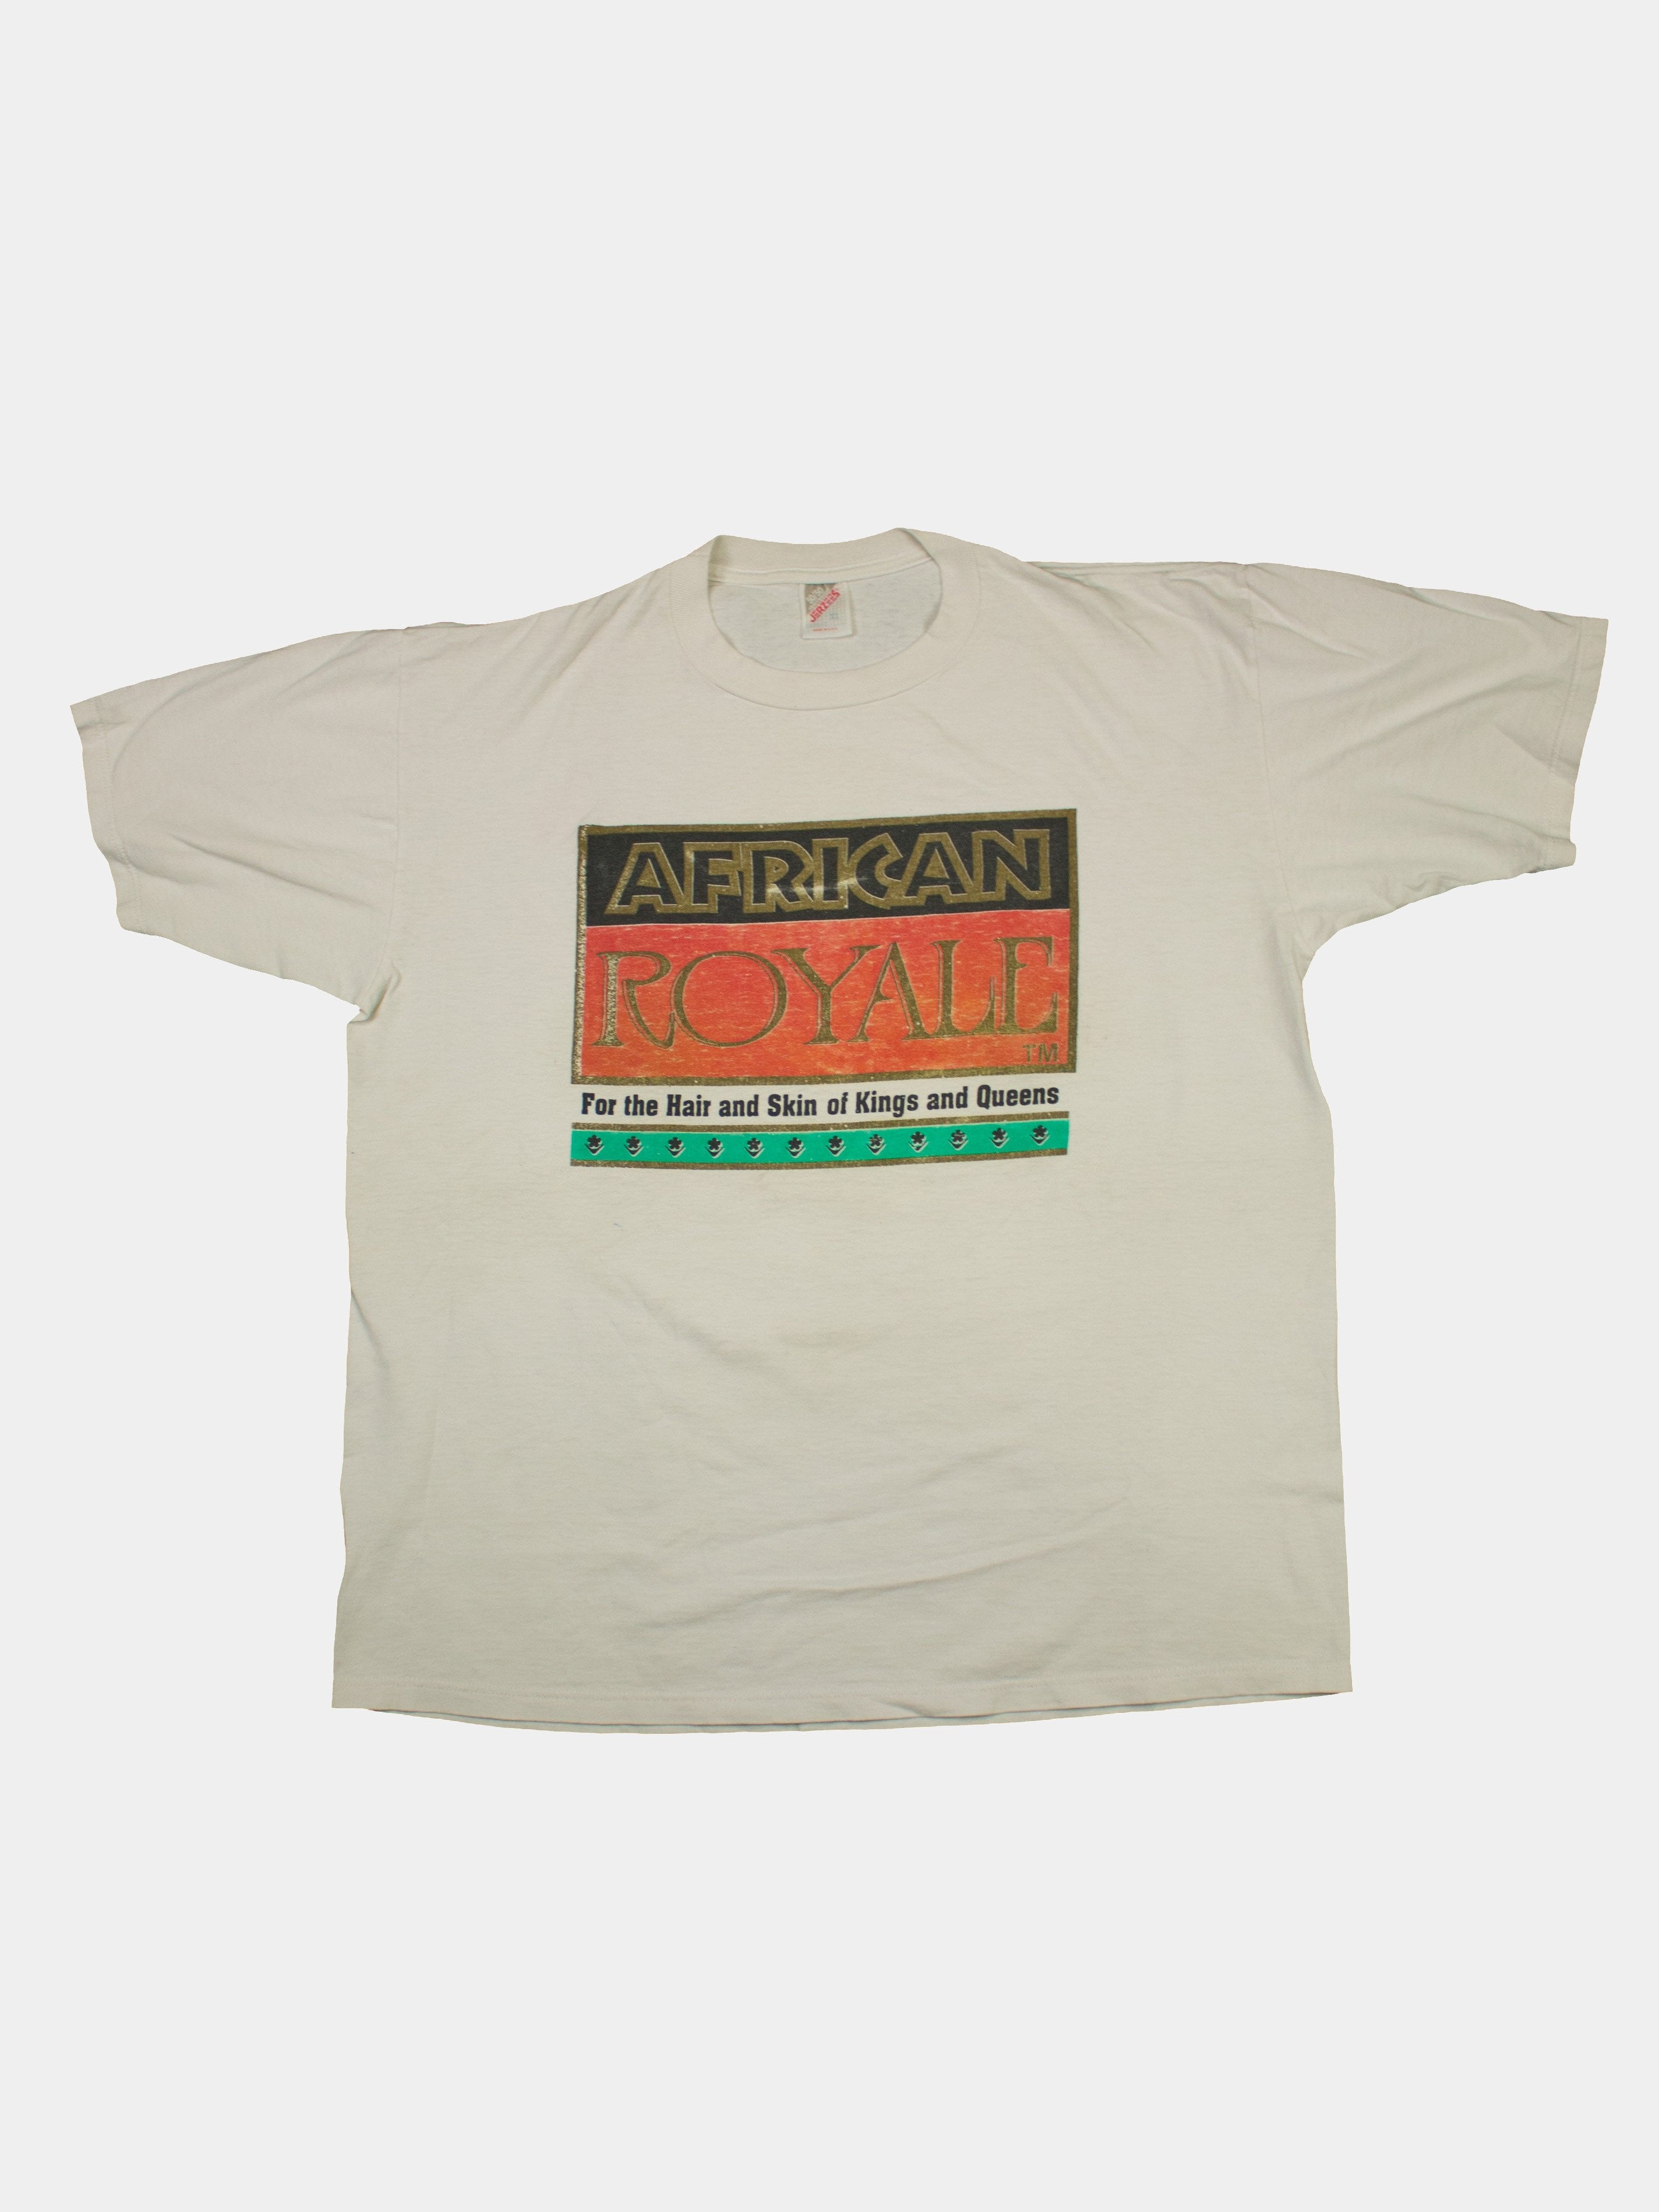 1980's African Royale T-Shirt